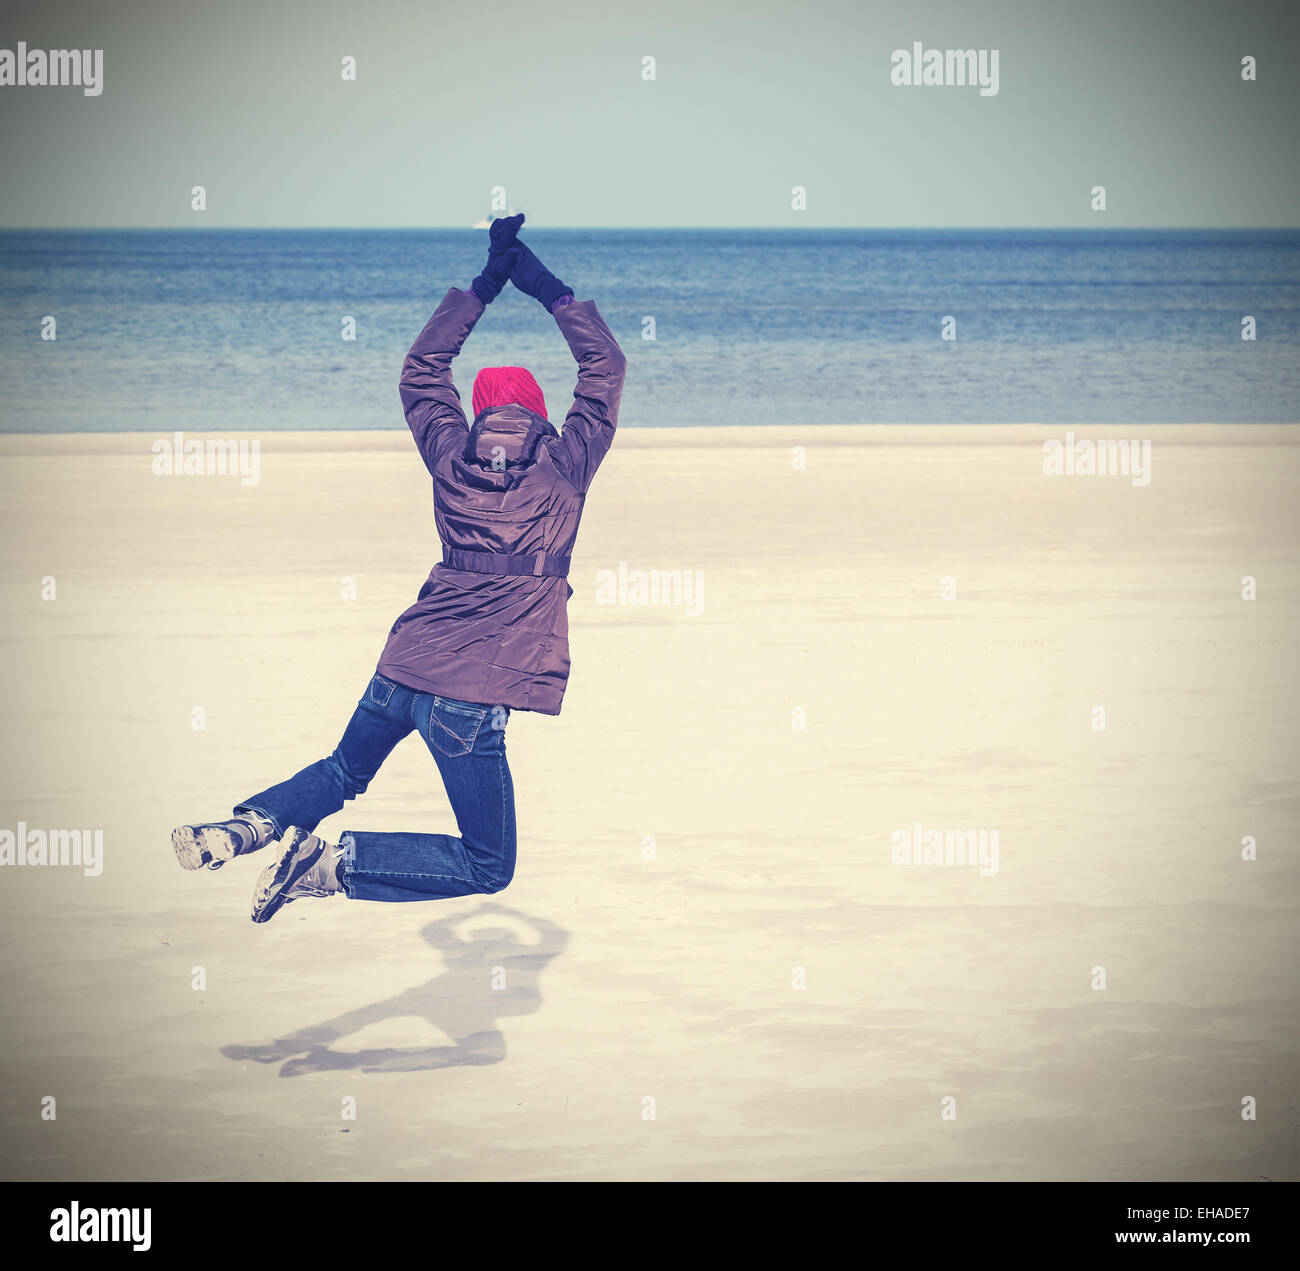 Retro filtered photo of woman jumping on beach, winter active lifestyle concept, space for text. Stock Foto